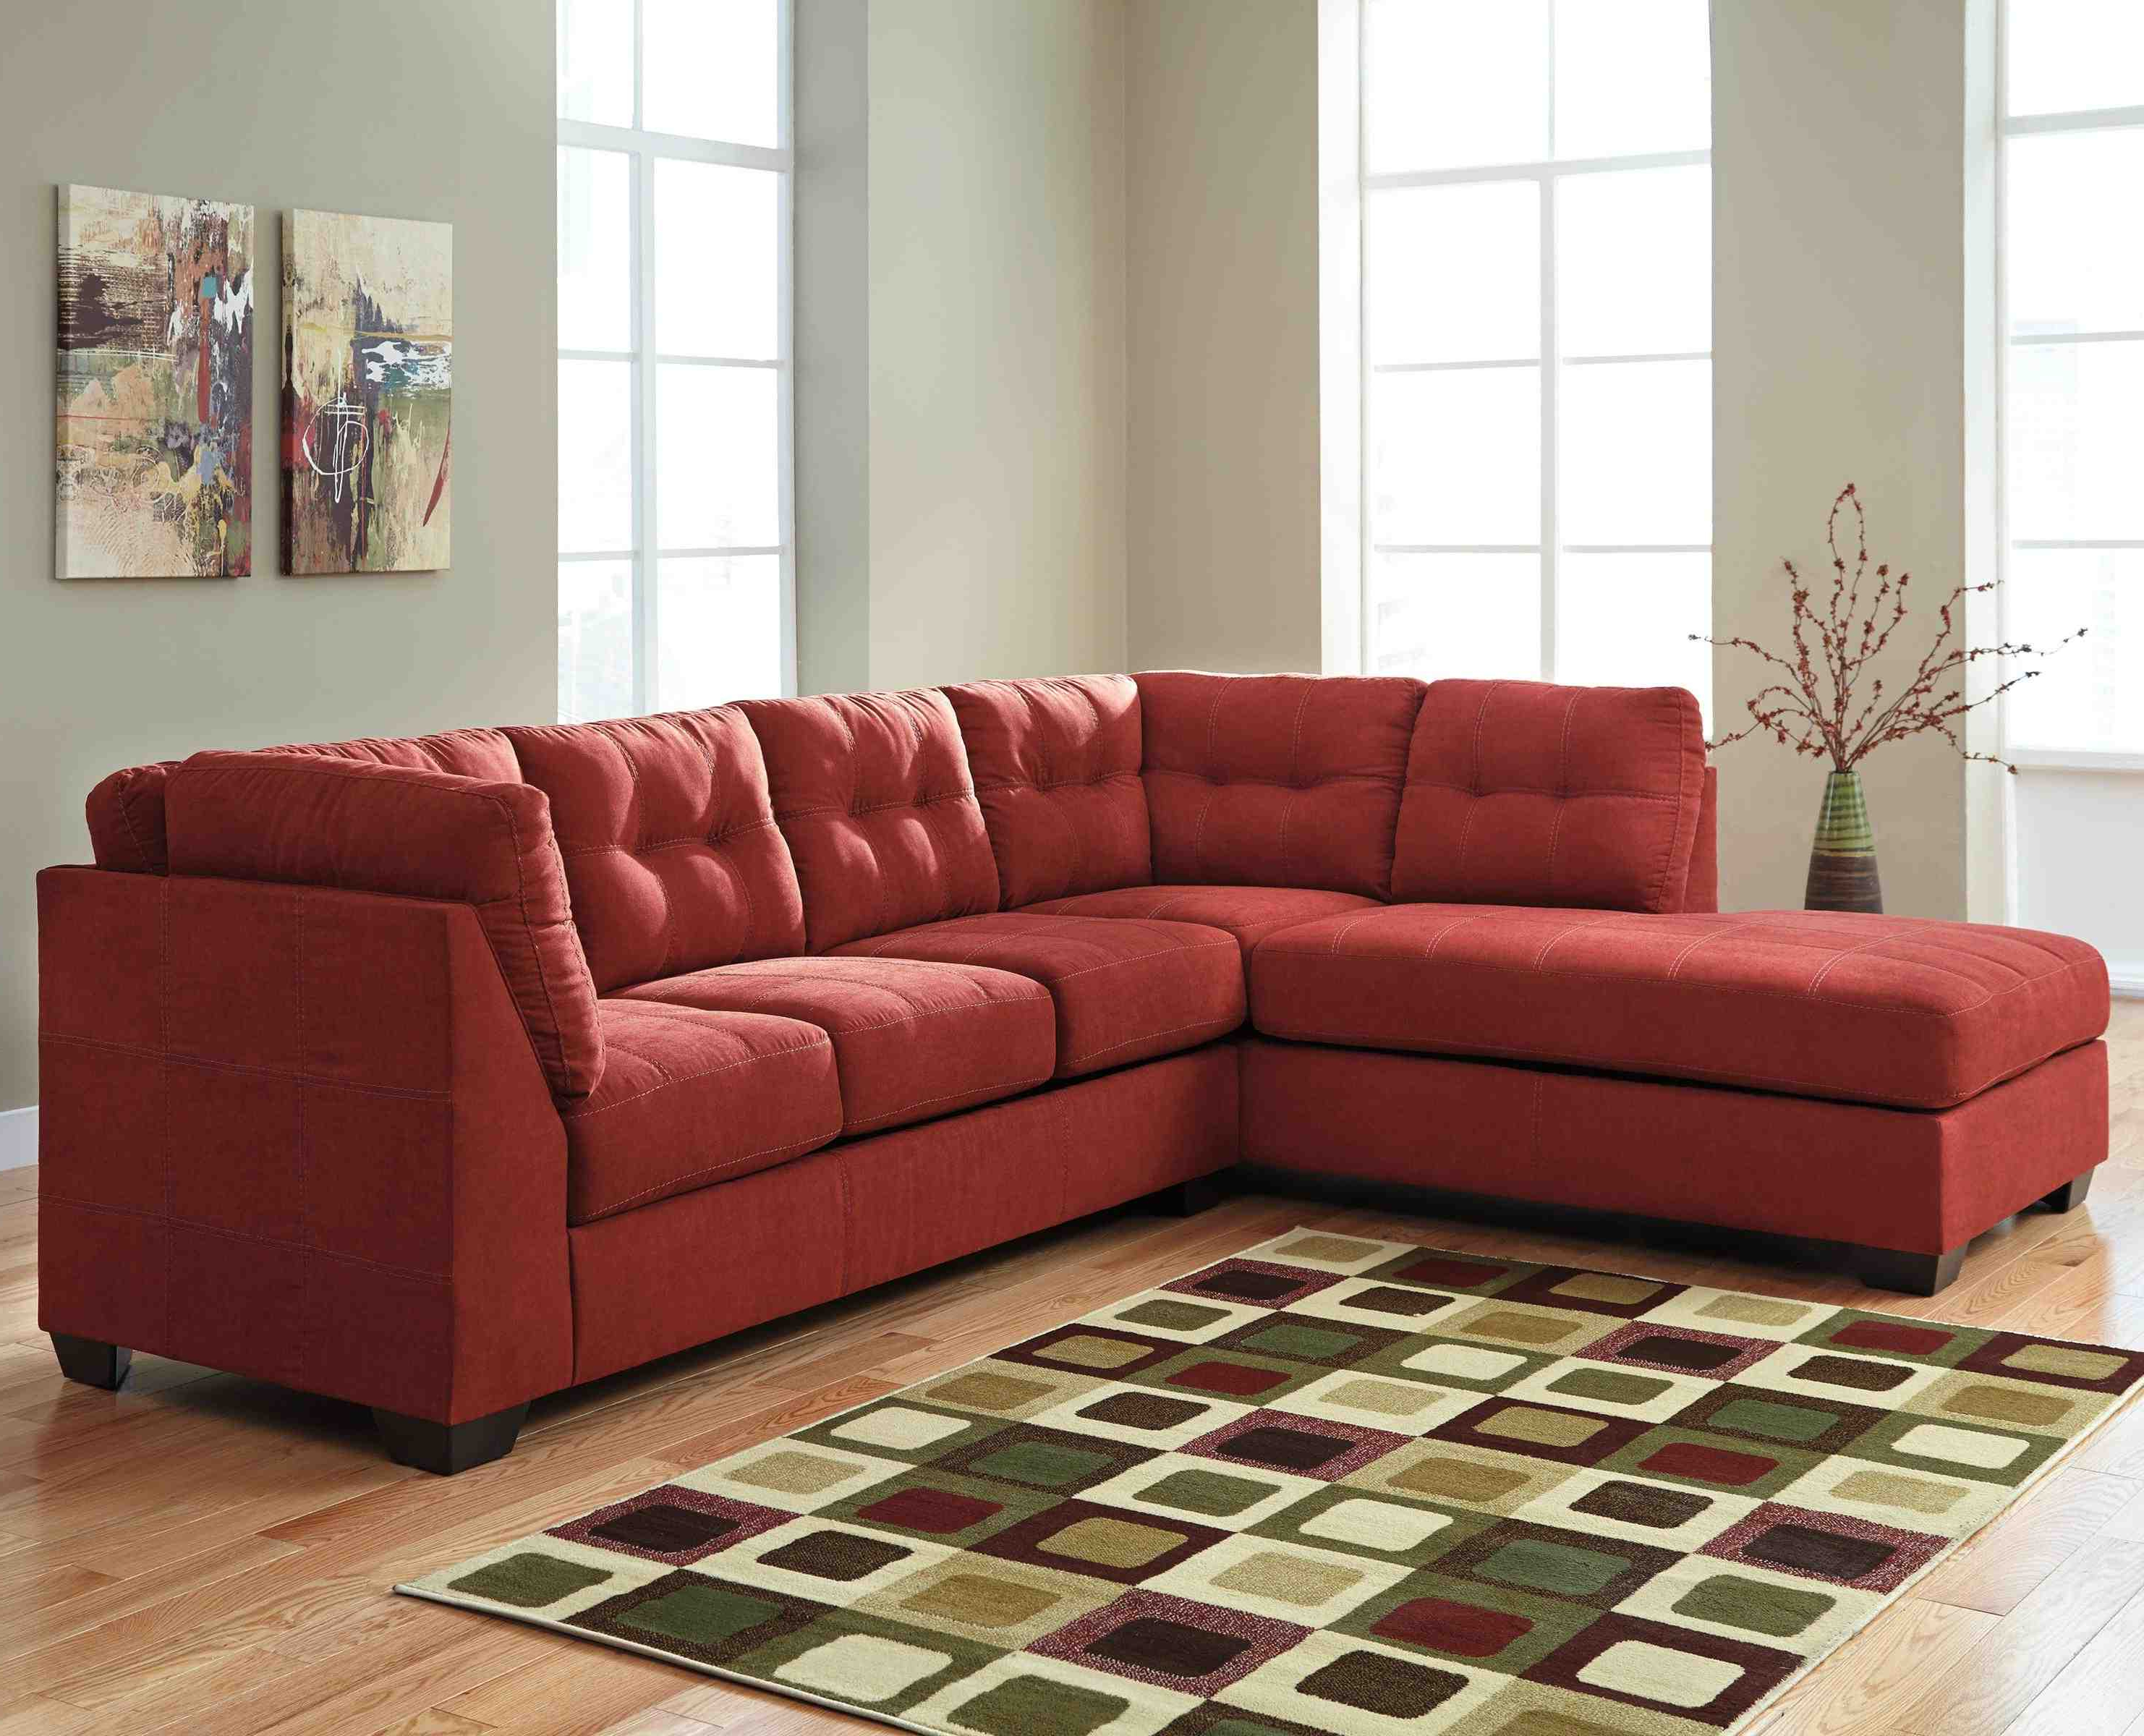 Delano 2 Piece Sectionals With Raf Oversized Chaise With Most Current Delano 2 Piece Sectional W/laf Oversized Chaise Living Spaces (View 13 of 20)